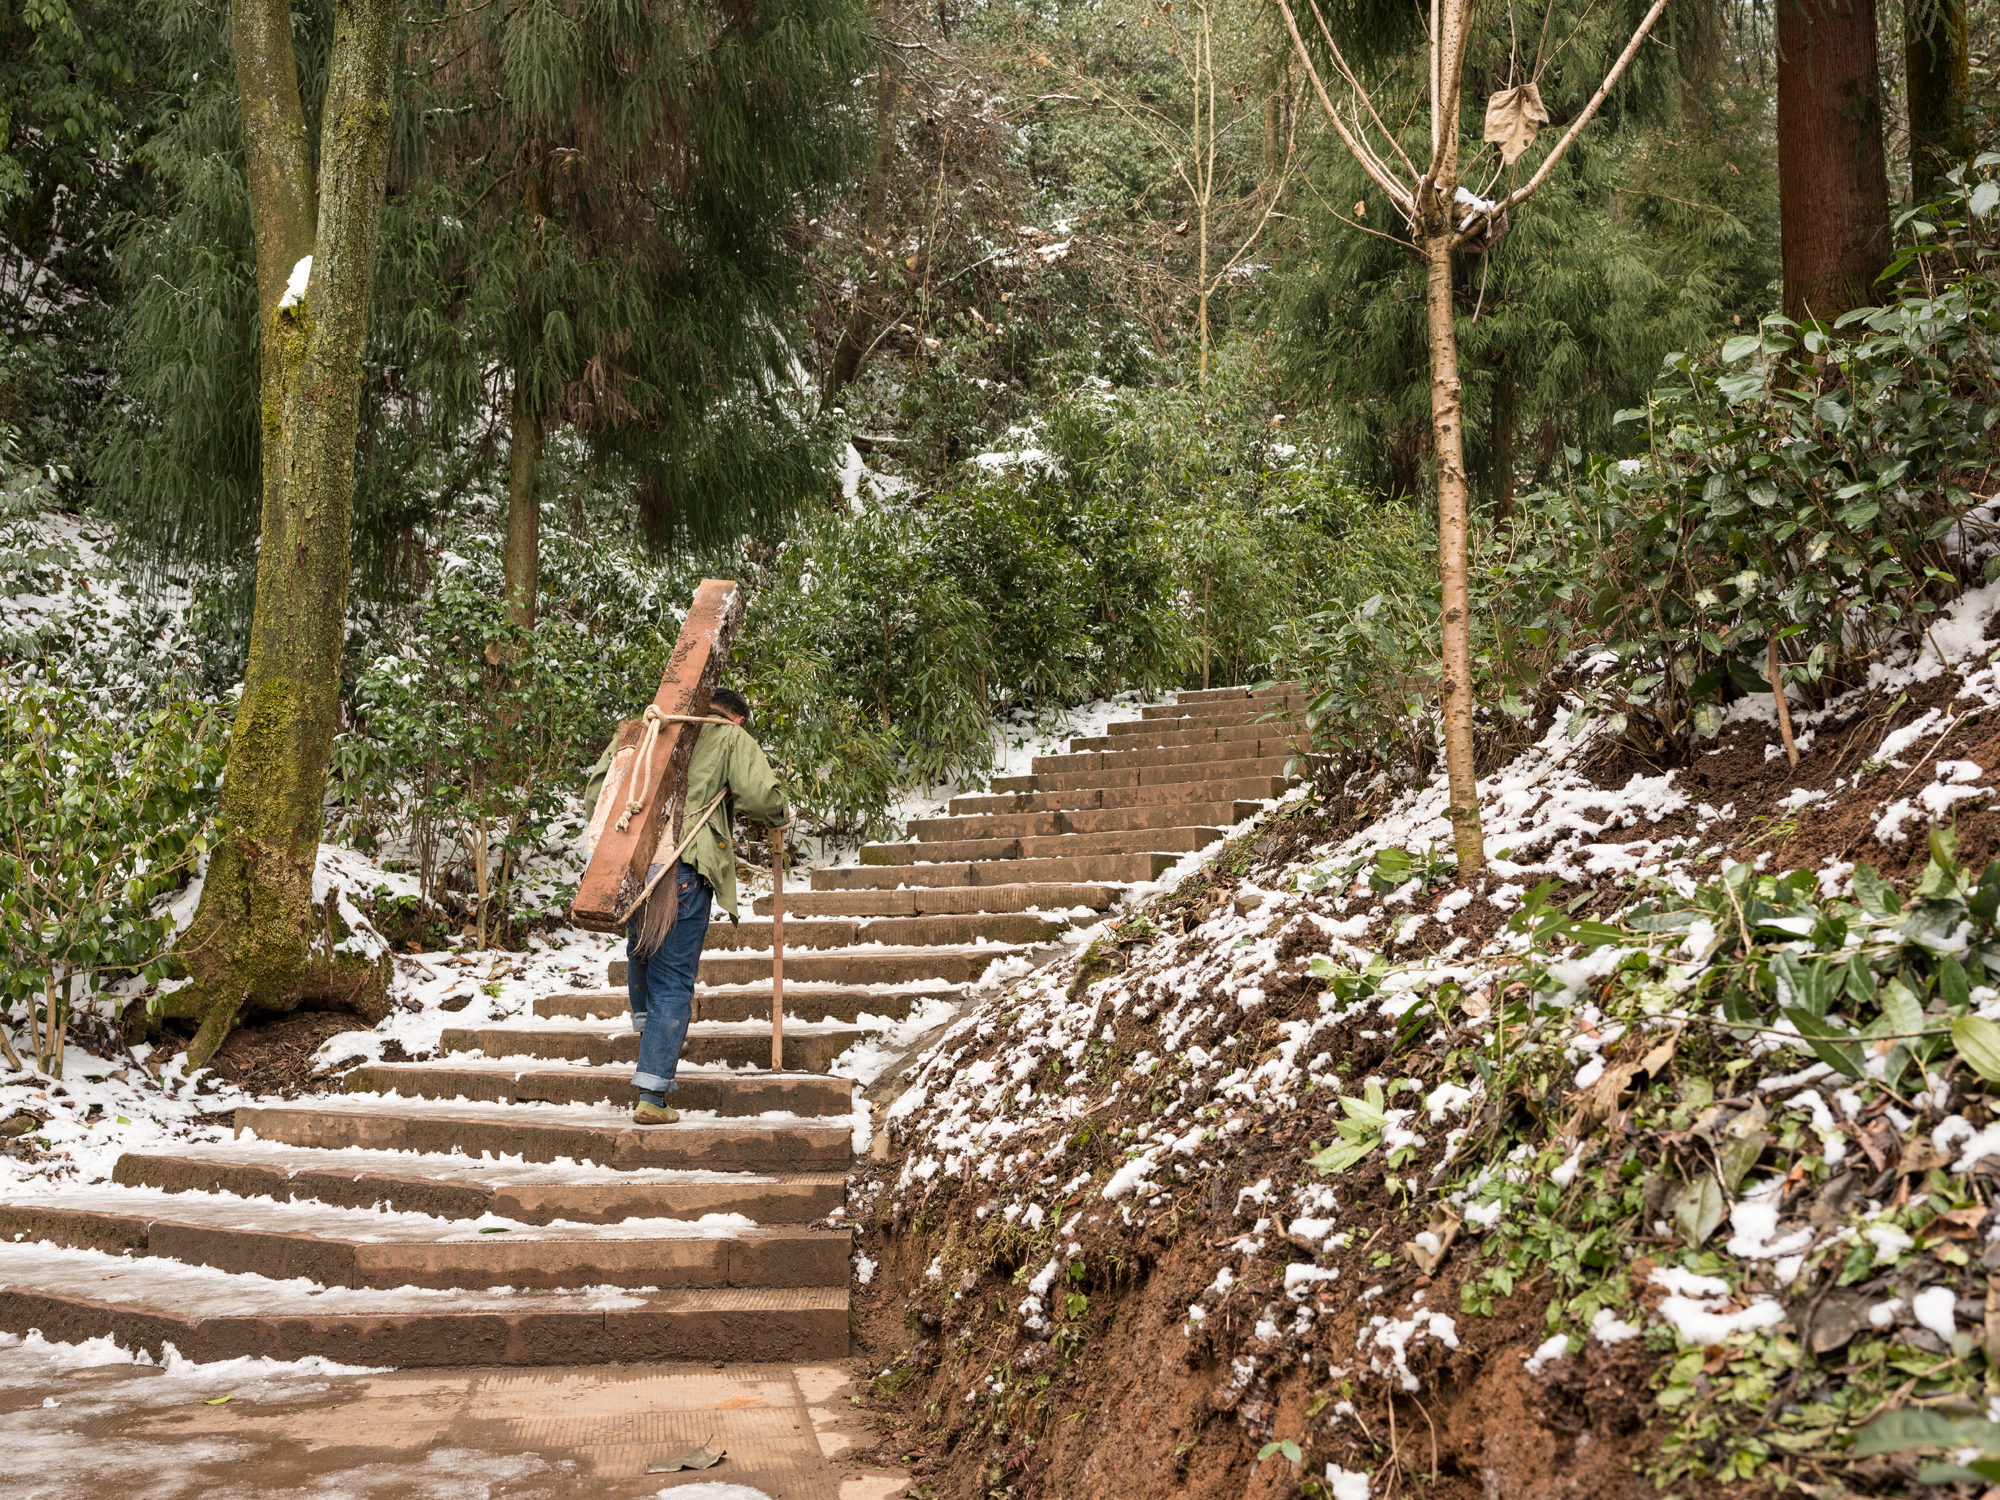 A worker carries a wooden beam up the ice-covered steps of Mengding mountain.